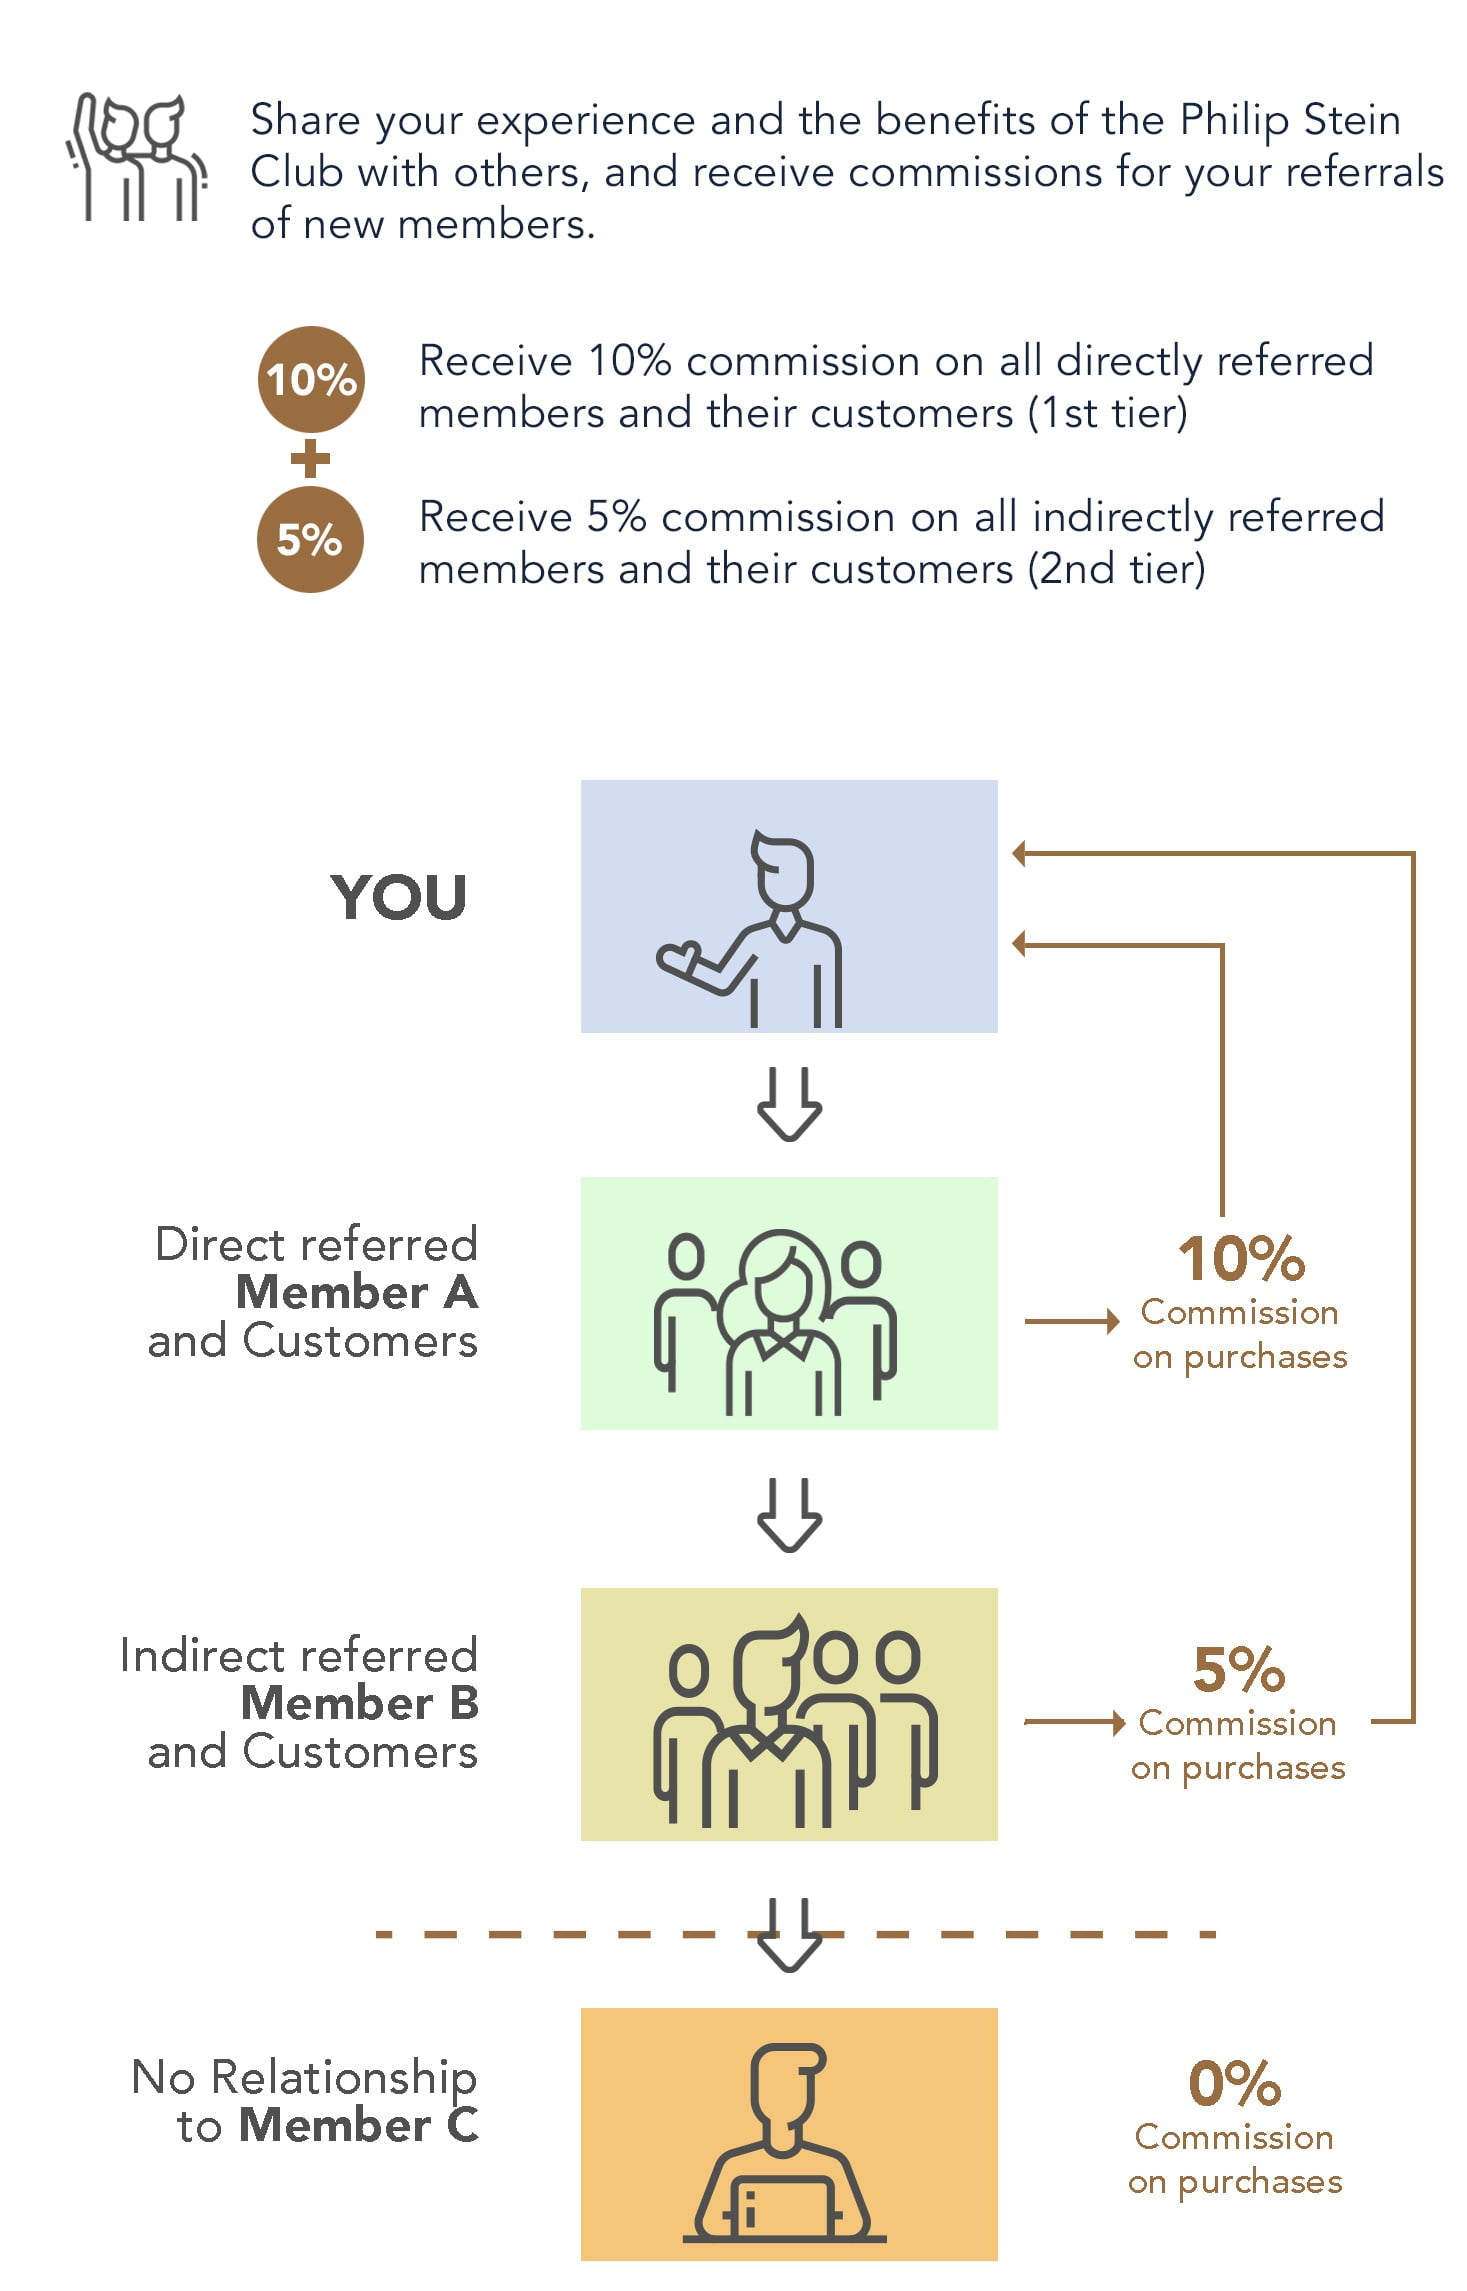 The Referral Program to Potential Members